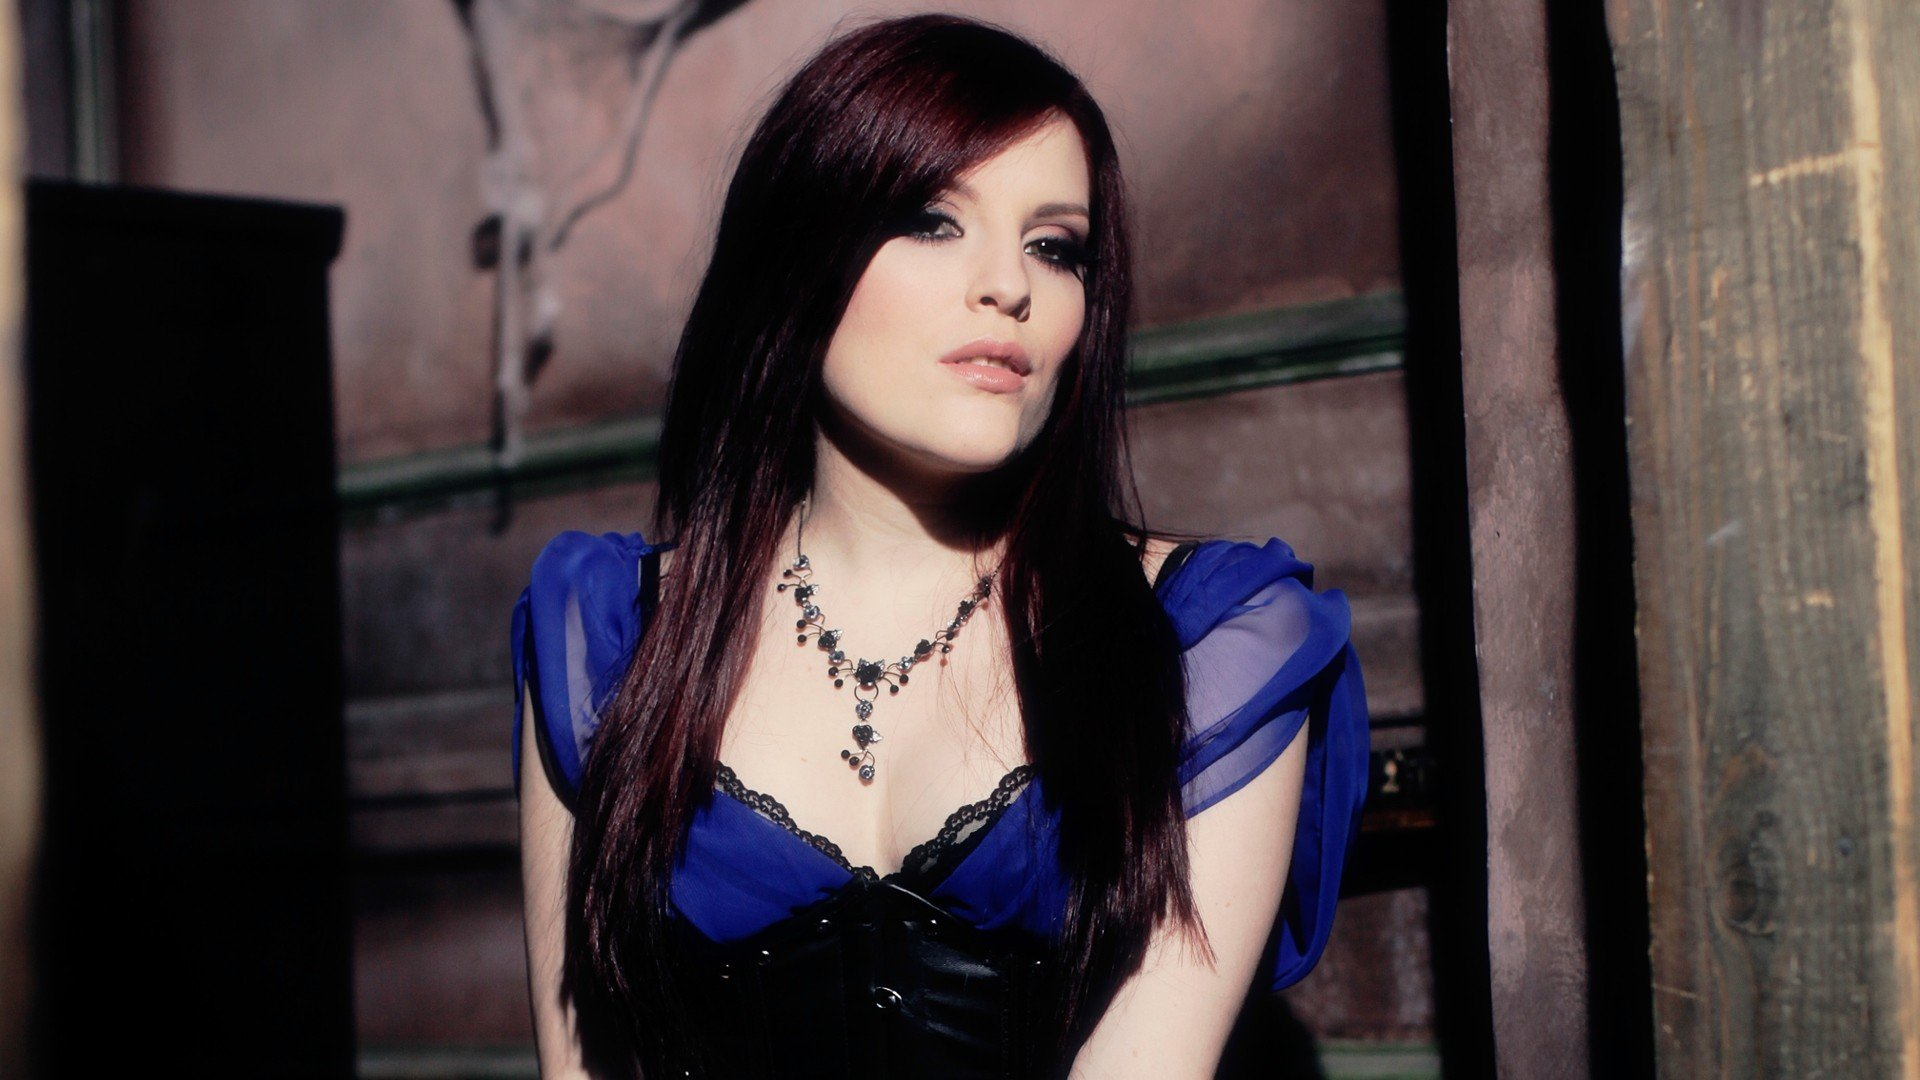 gothic-metal-ailyn-wallpaper-bands-sirenia-wallpapers-brunettes.jpg